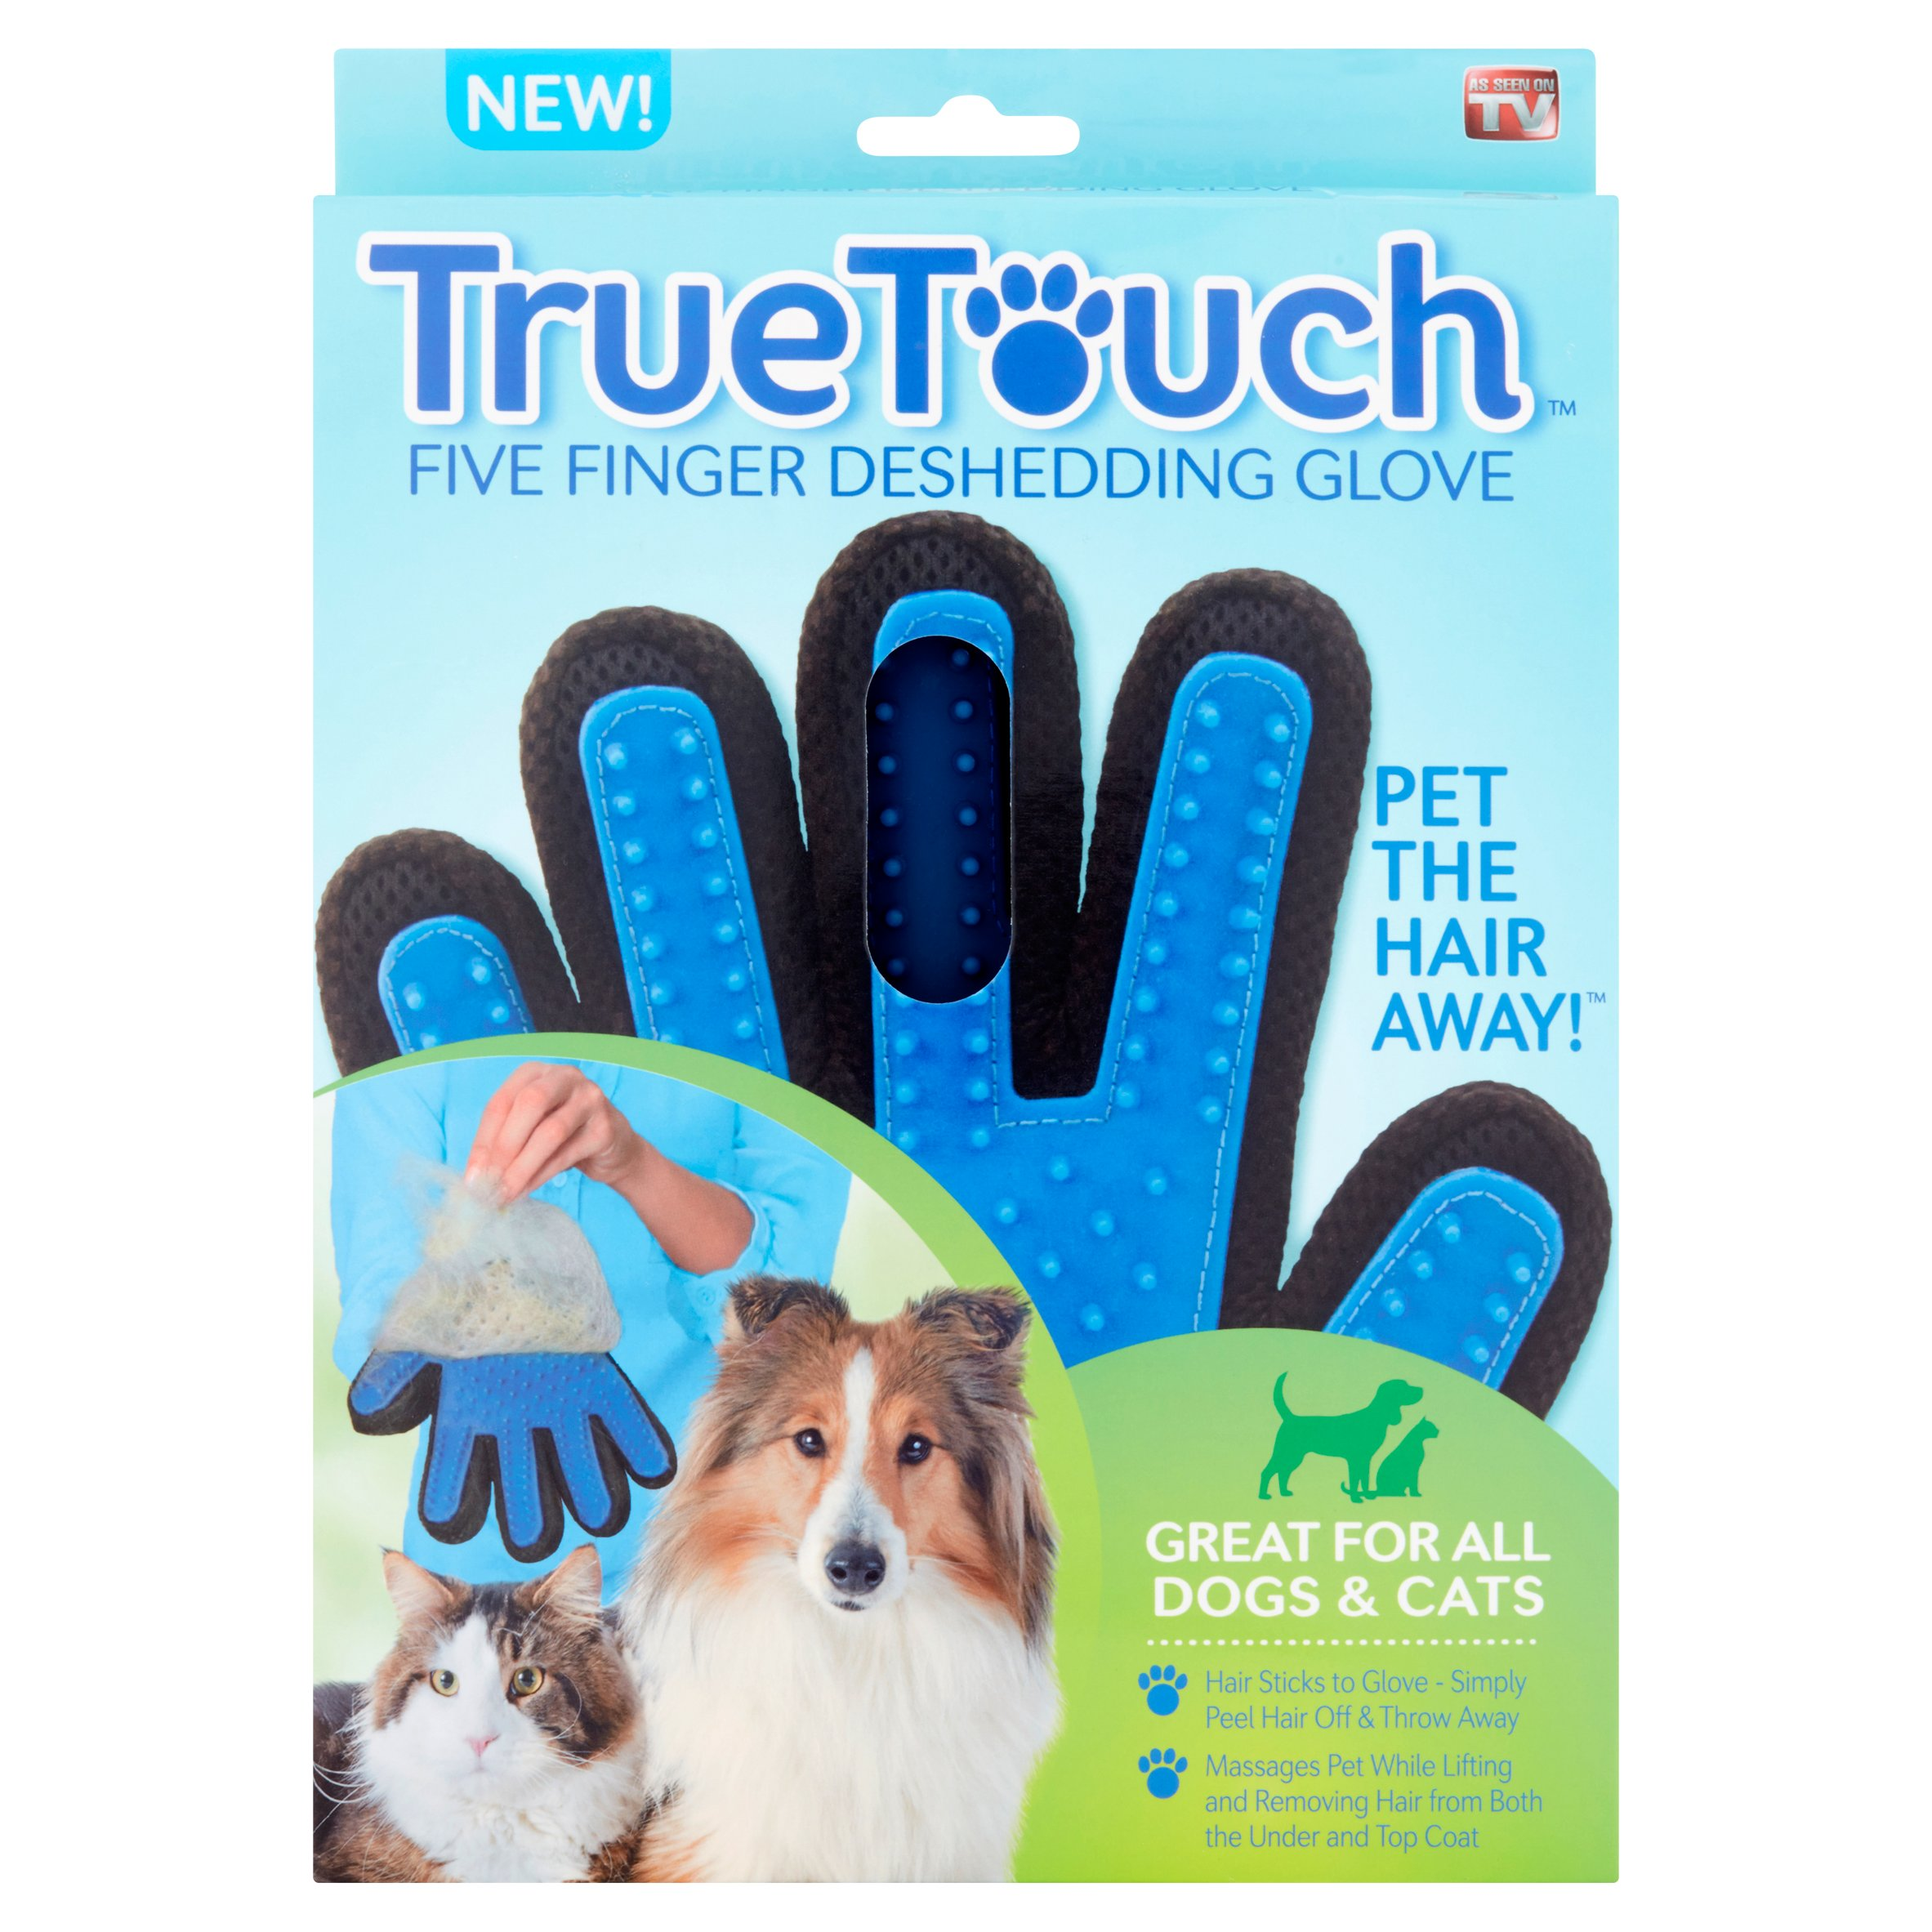 True Touch 5 Finger Deshedding Glove, for Easy Pet Grooming - As Seen on TV